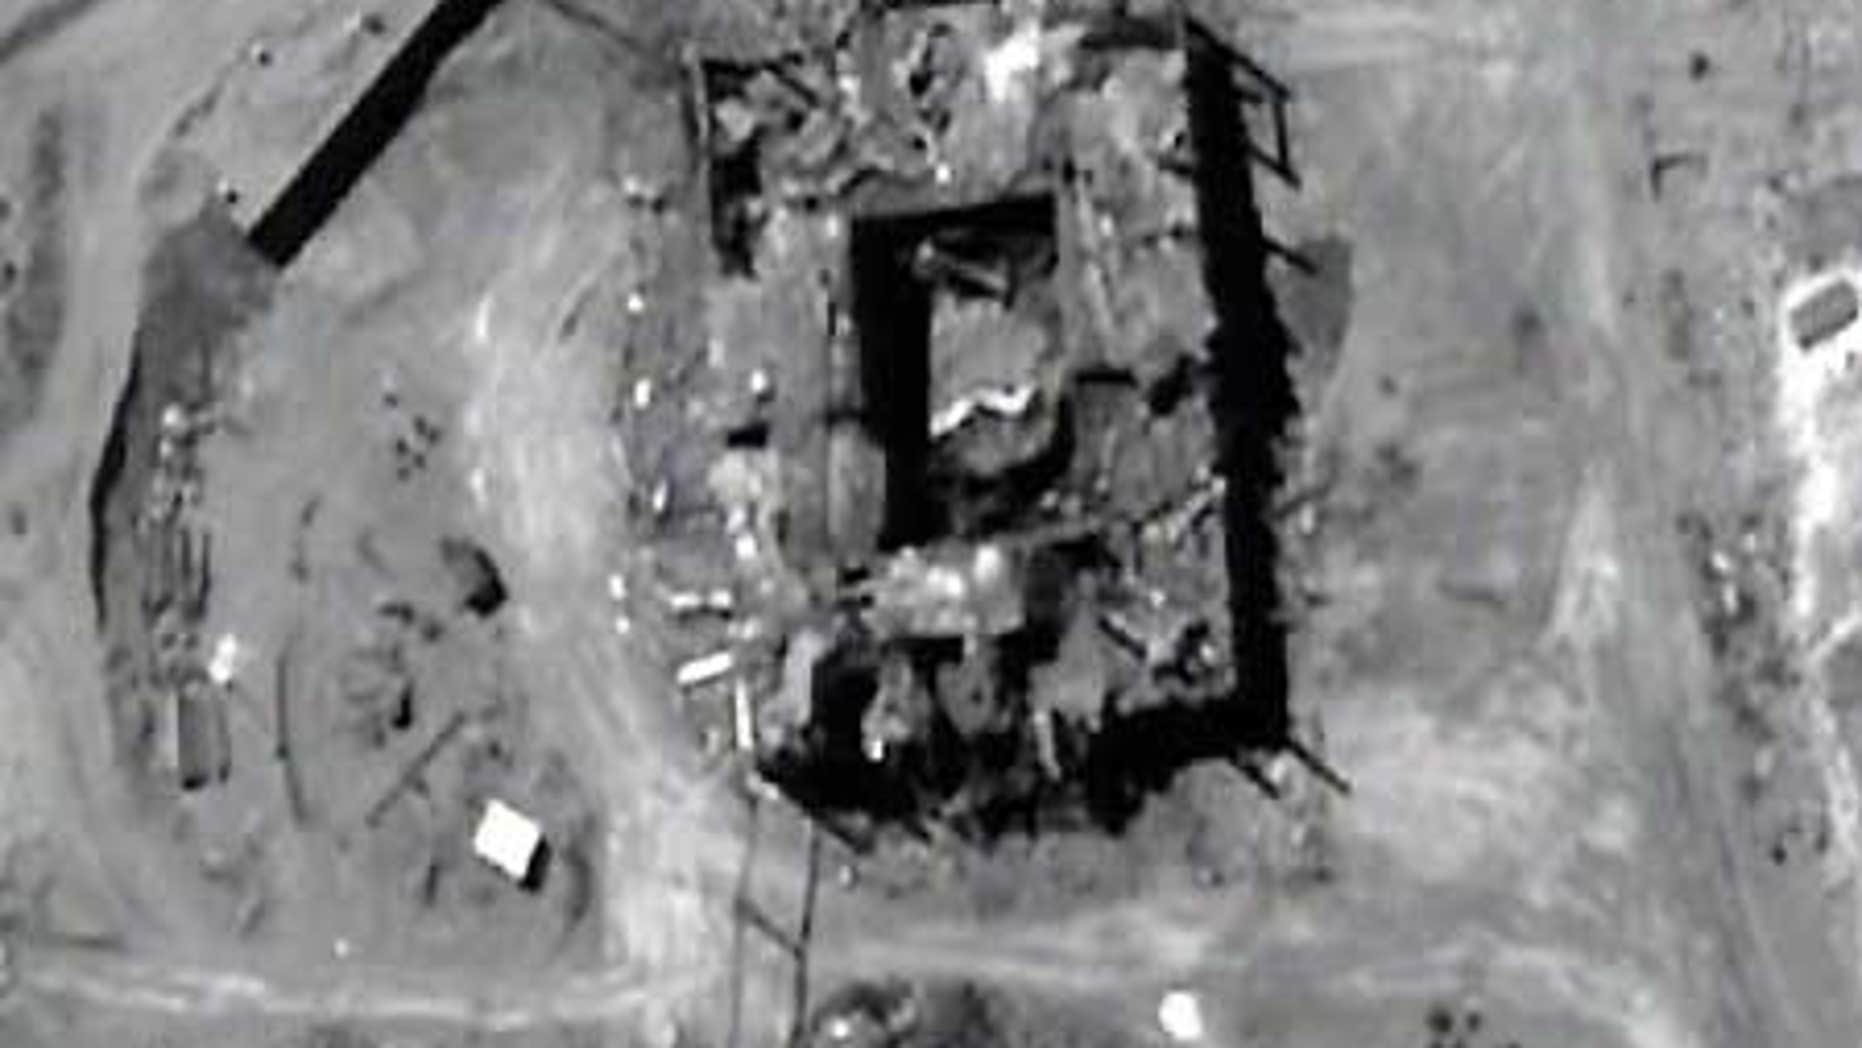 CIA image shows alleged covert nuclear reactor in Syria.